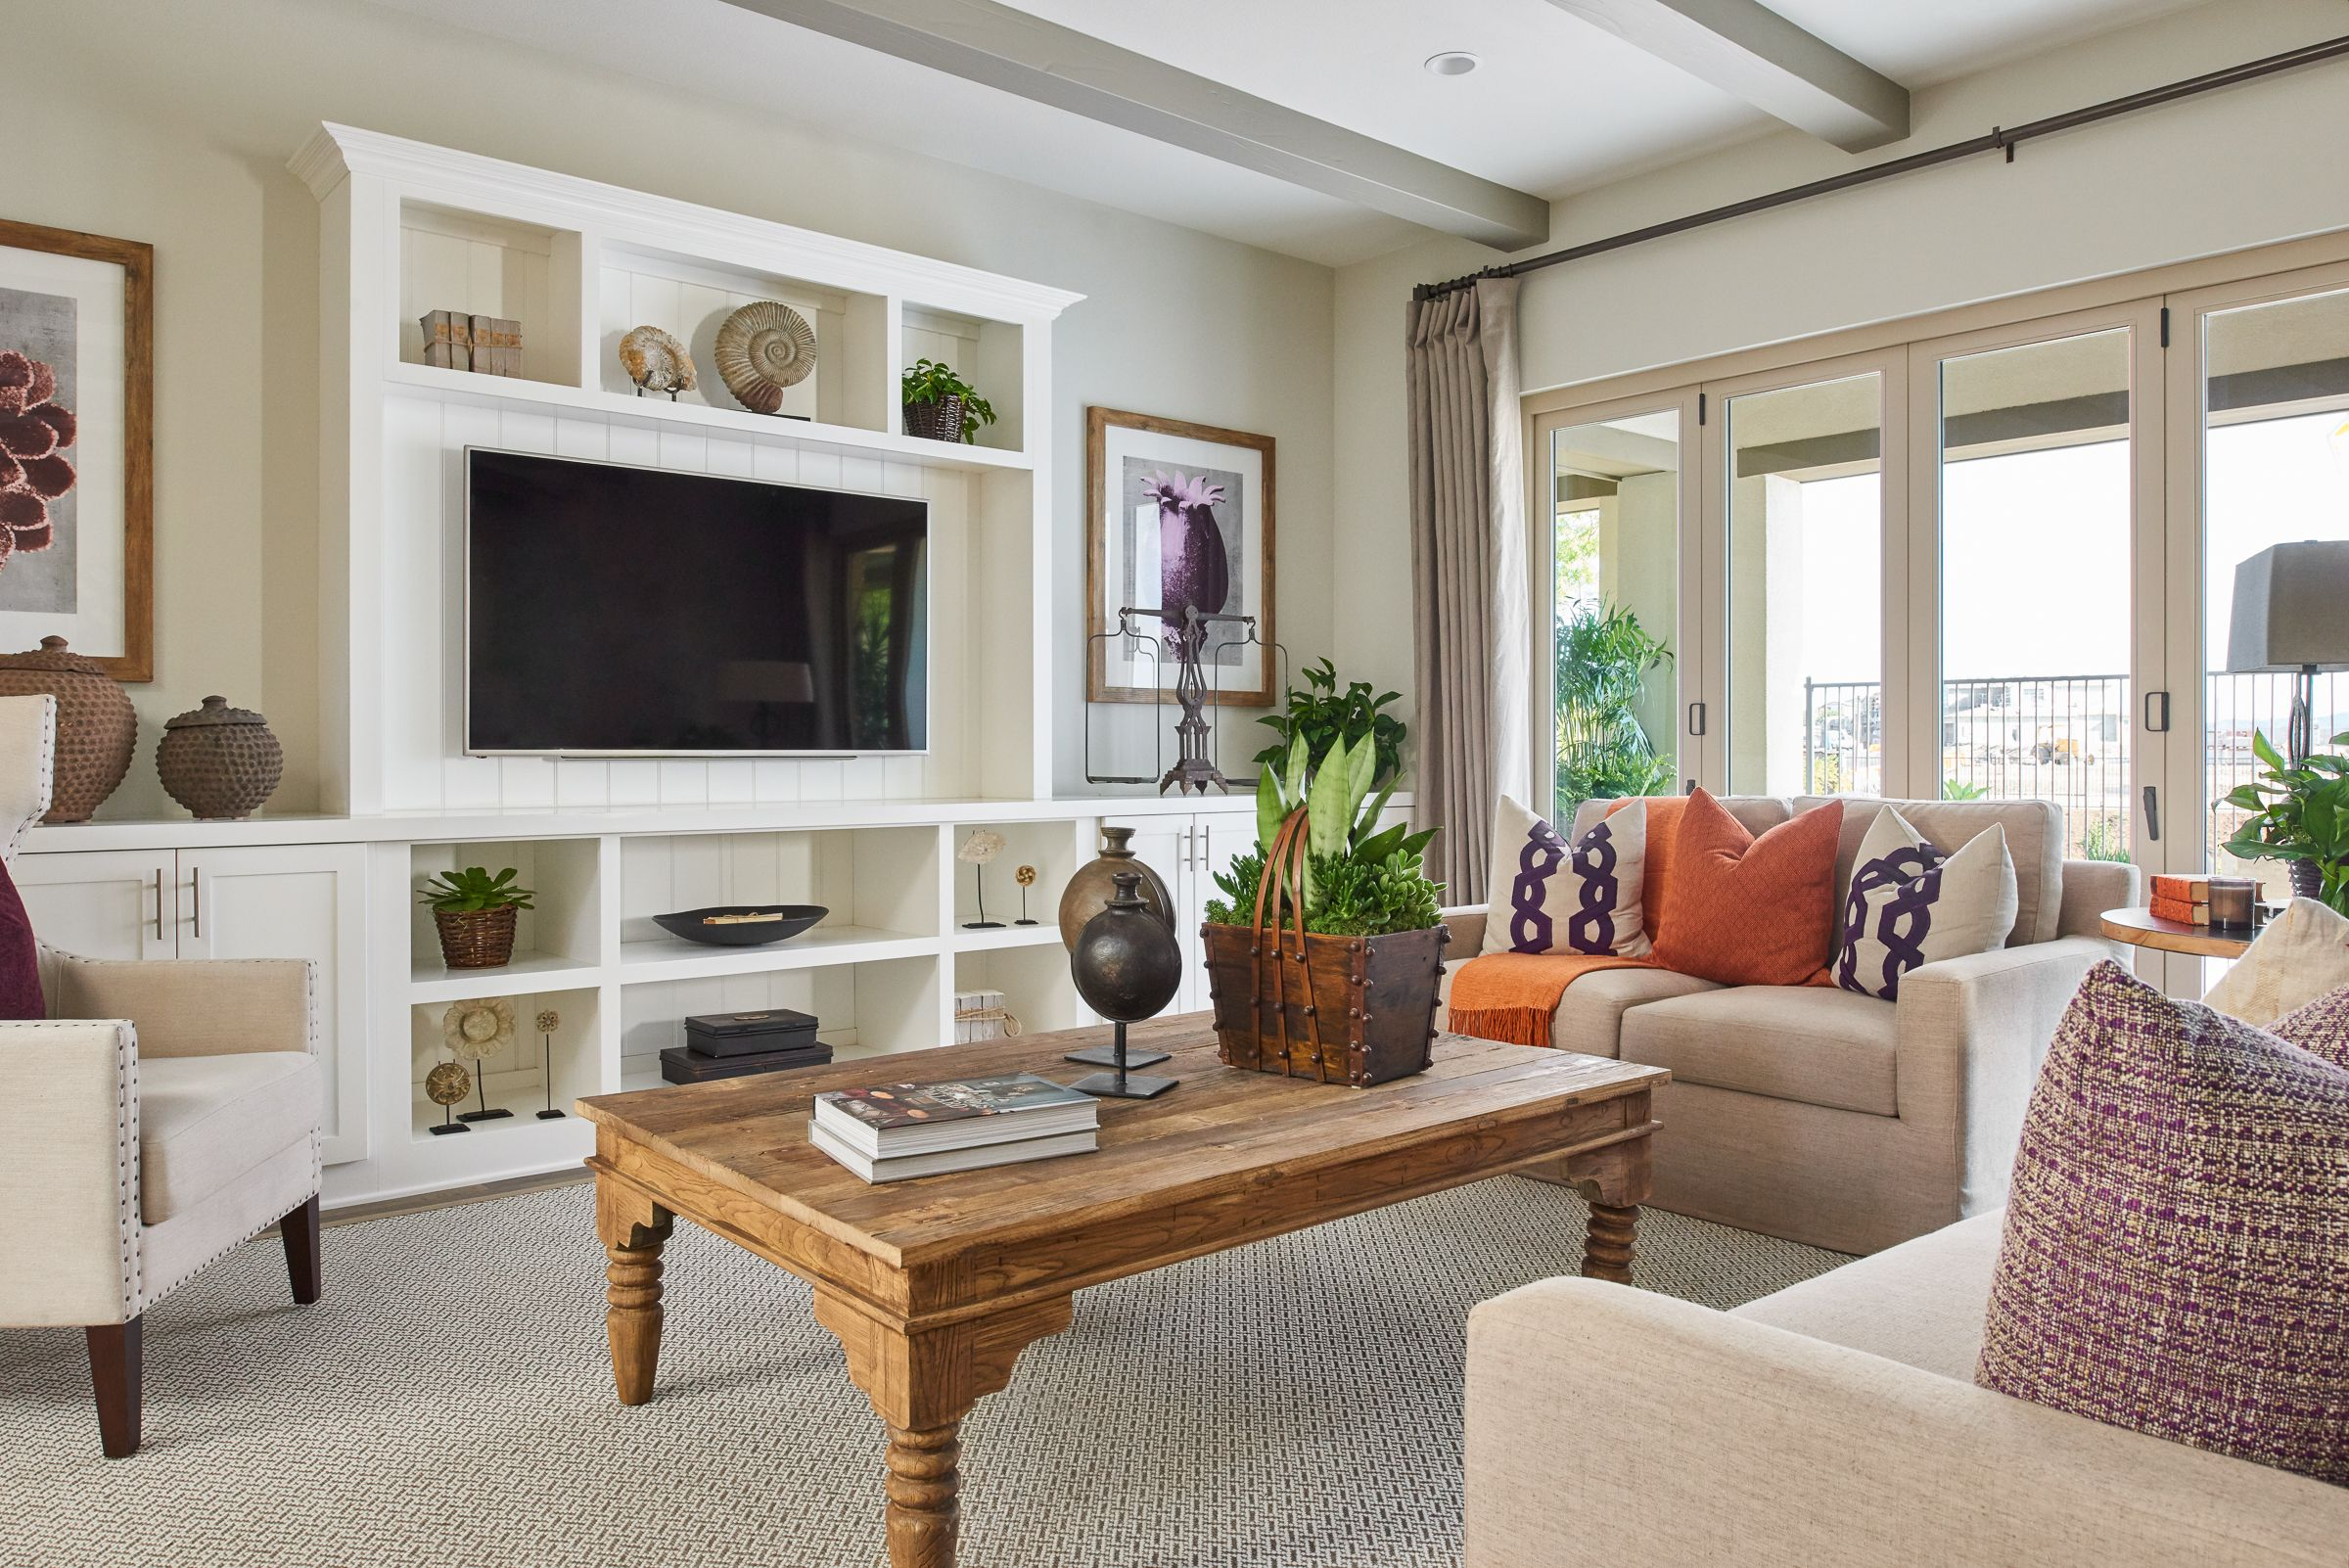 Master bedroom entertainment centers  Residence One at Briosa at Rancho Mission Viejo WilliamLyonHomes